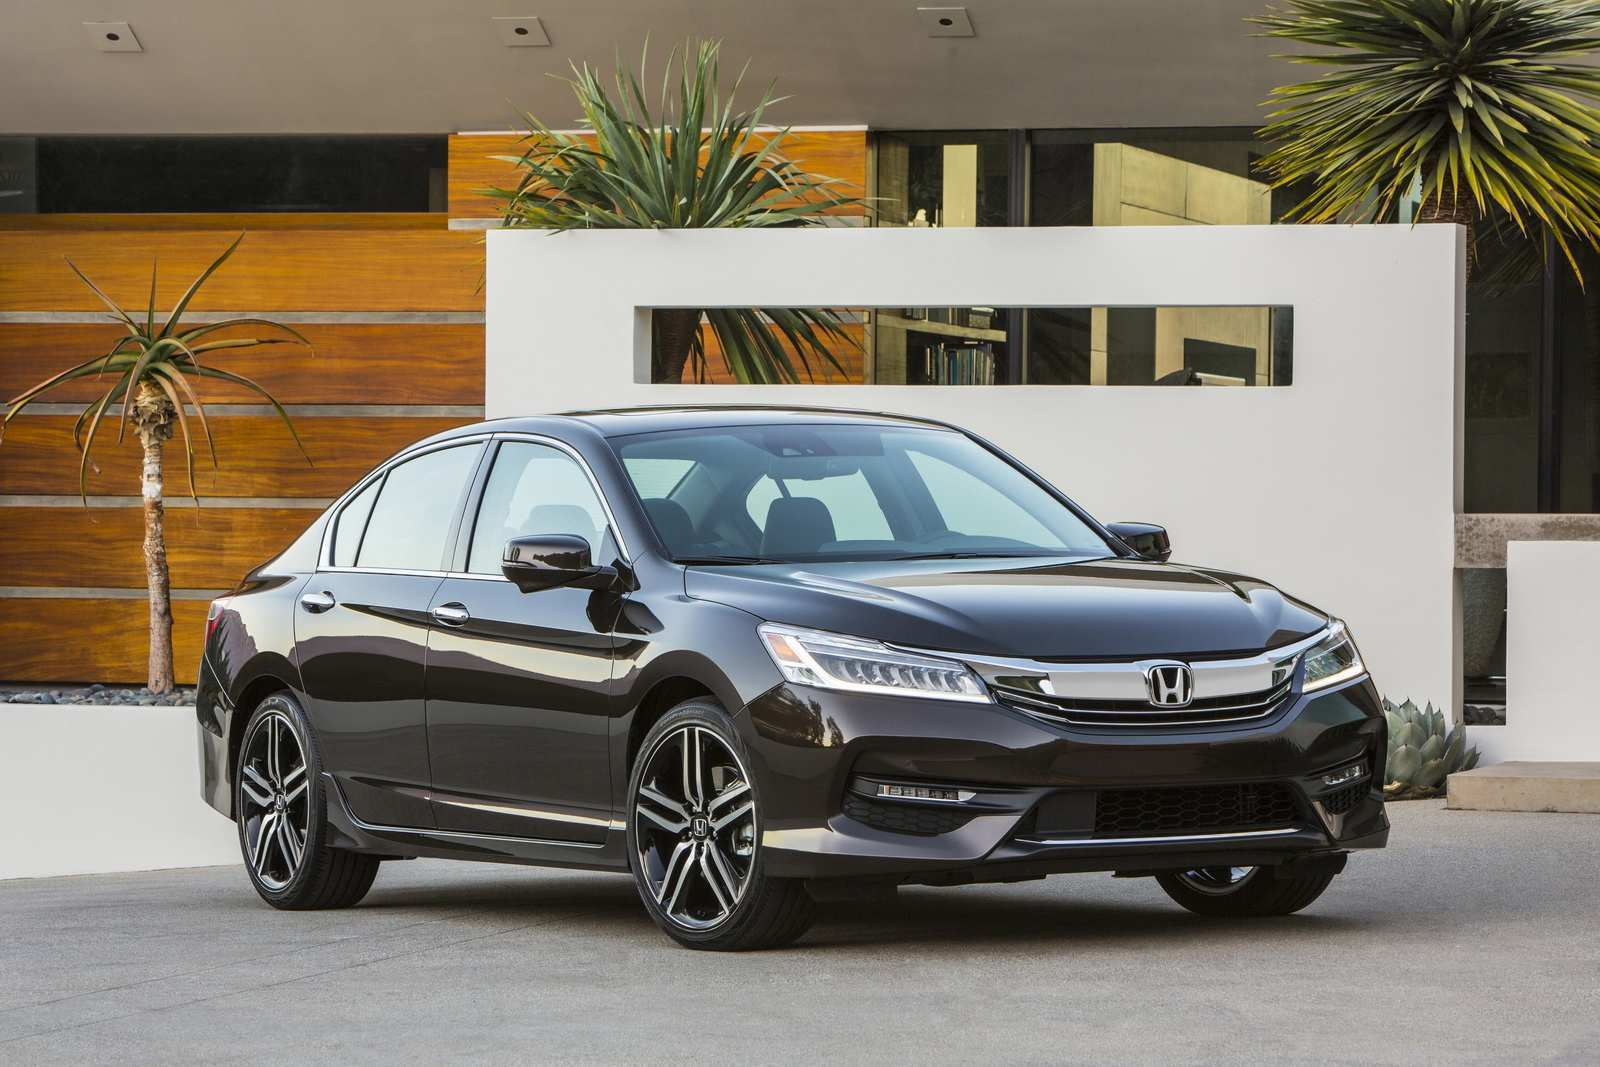 50 Great Honda Accord 2020 Prices with Honda Accord 2020